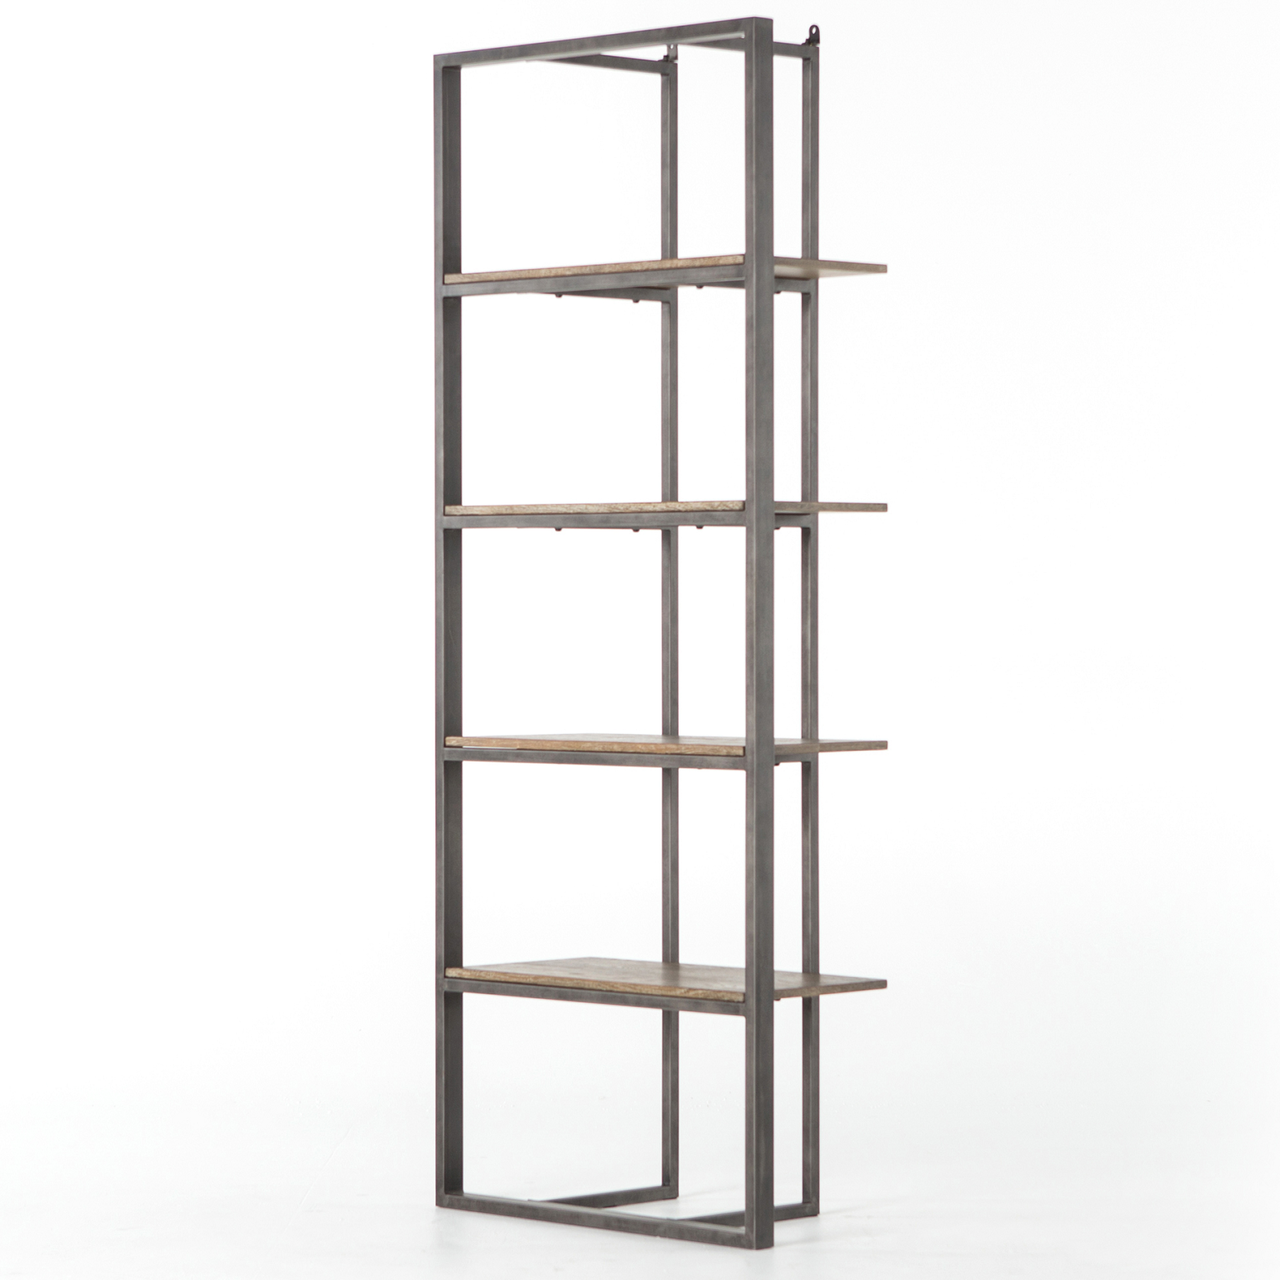 Grainger Modern Industrial Open Bookshelf.